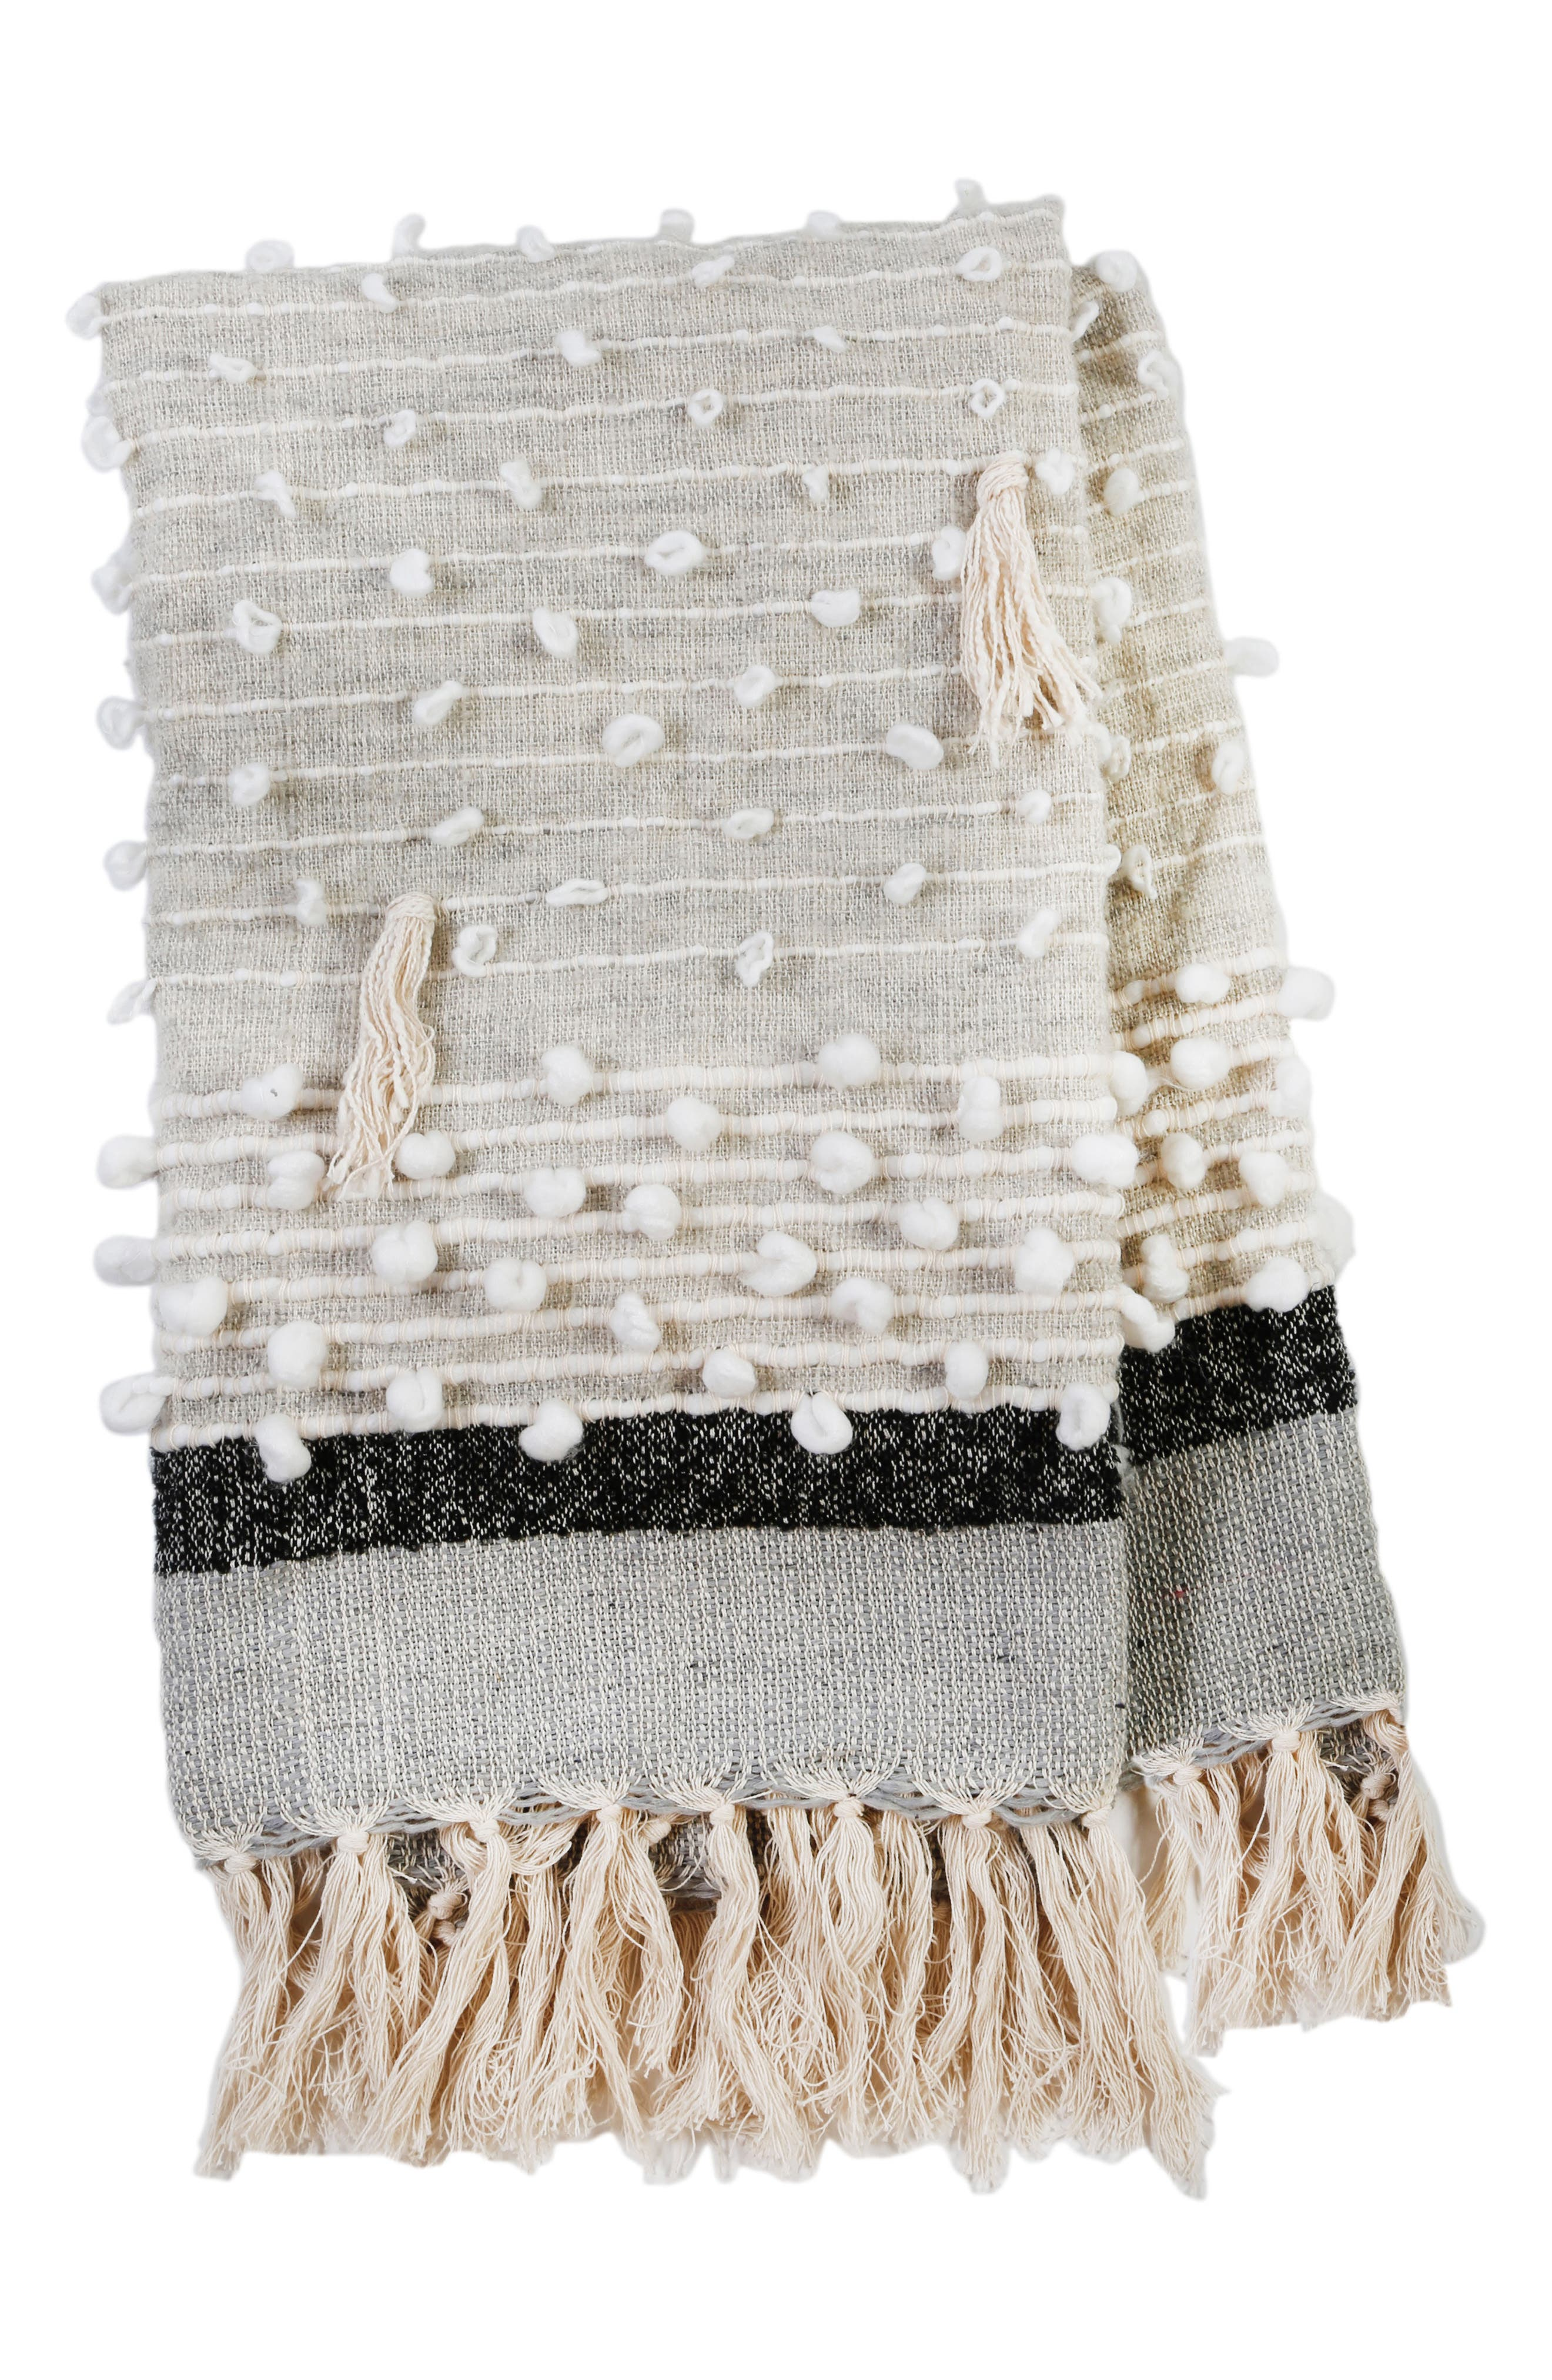 Soft tassel trim enhances the boho styling of a cozy throw handwoven from a soft blend of fabrics that add instant texture to your favorite space. Style Name: Pom Pom At Home Ziggy Woven Throw Blanket. Style Number: 5629251. Available in stores.